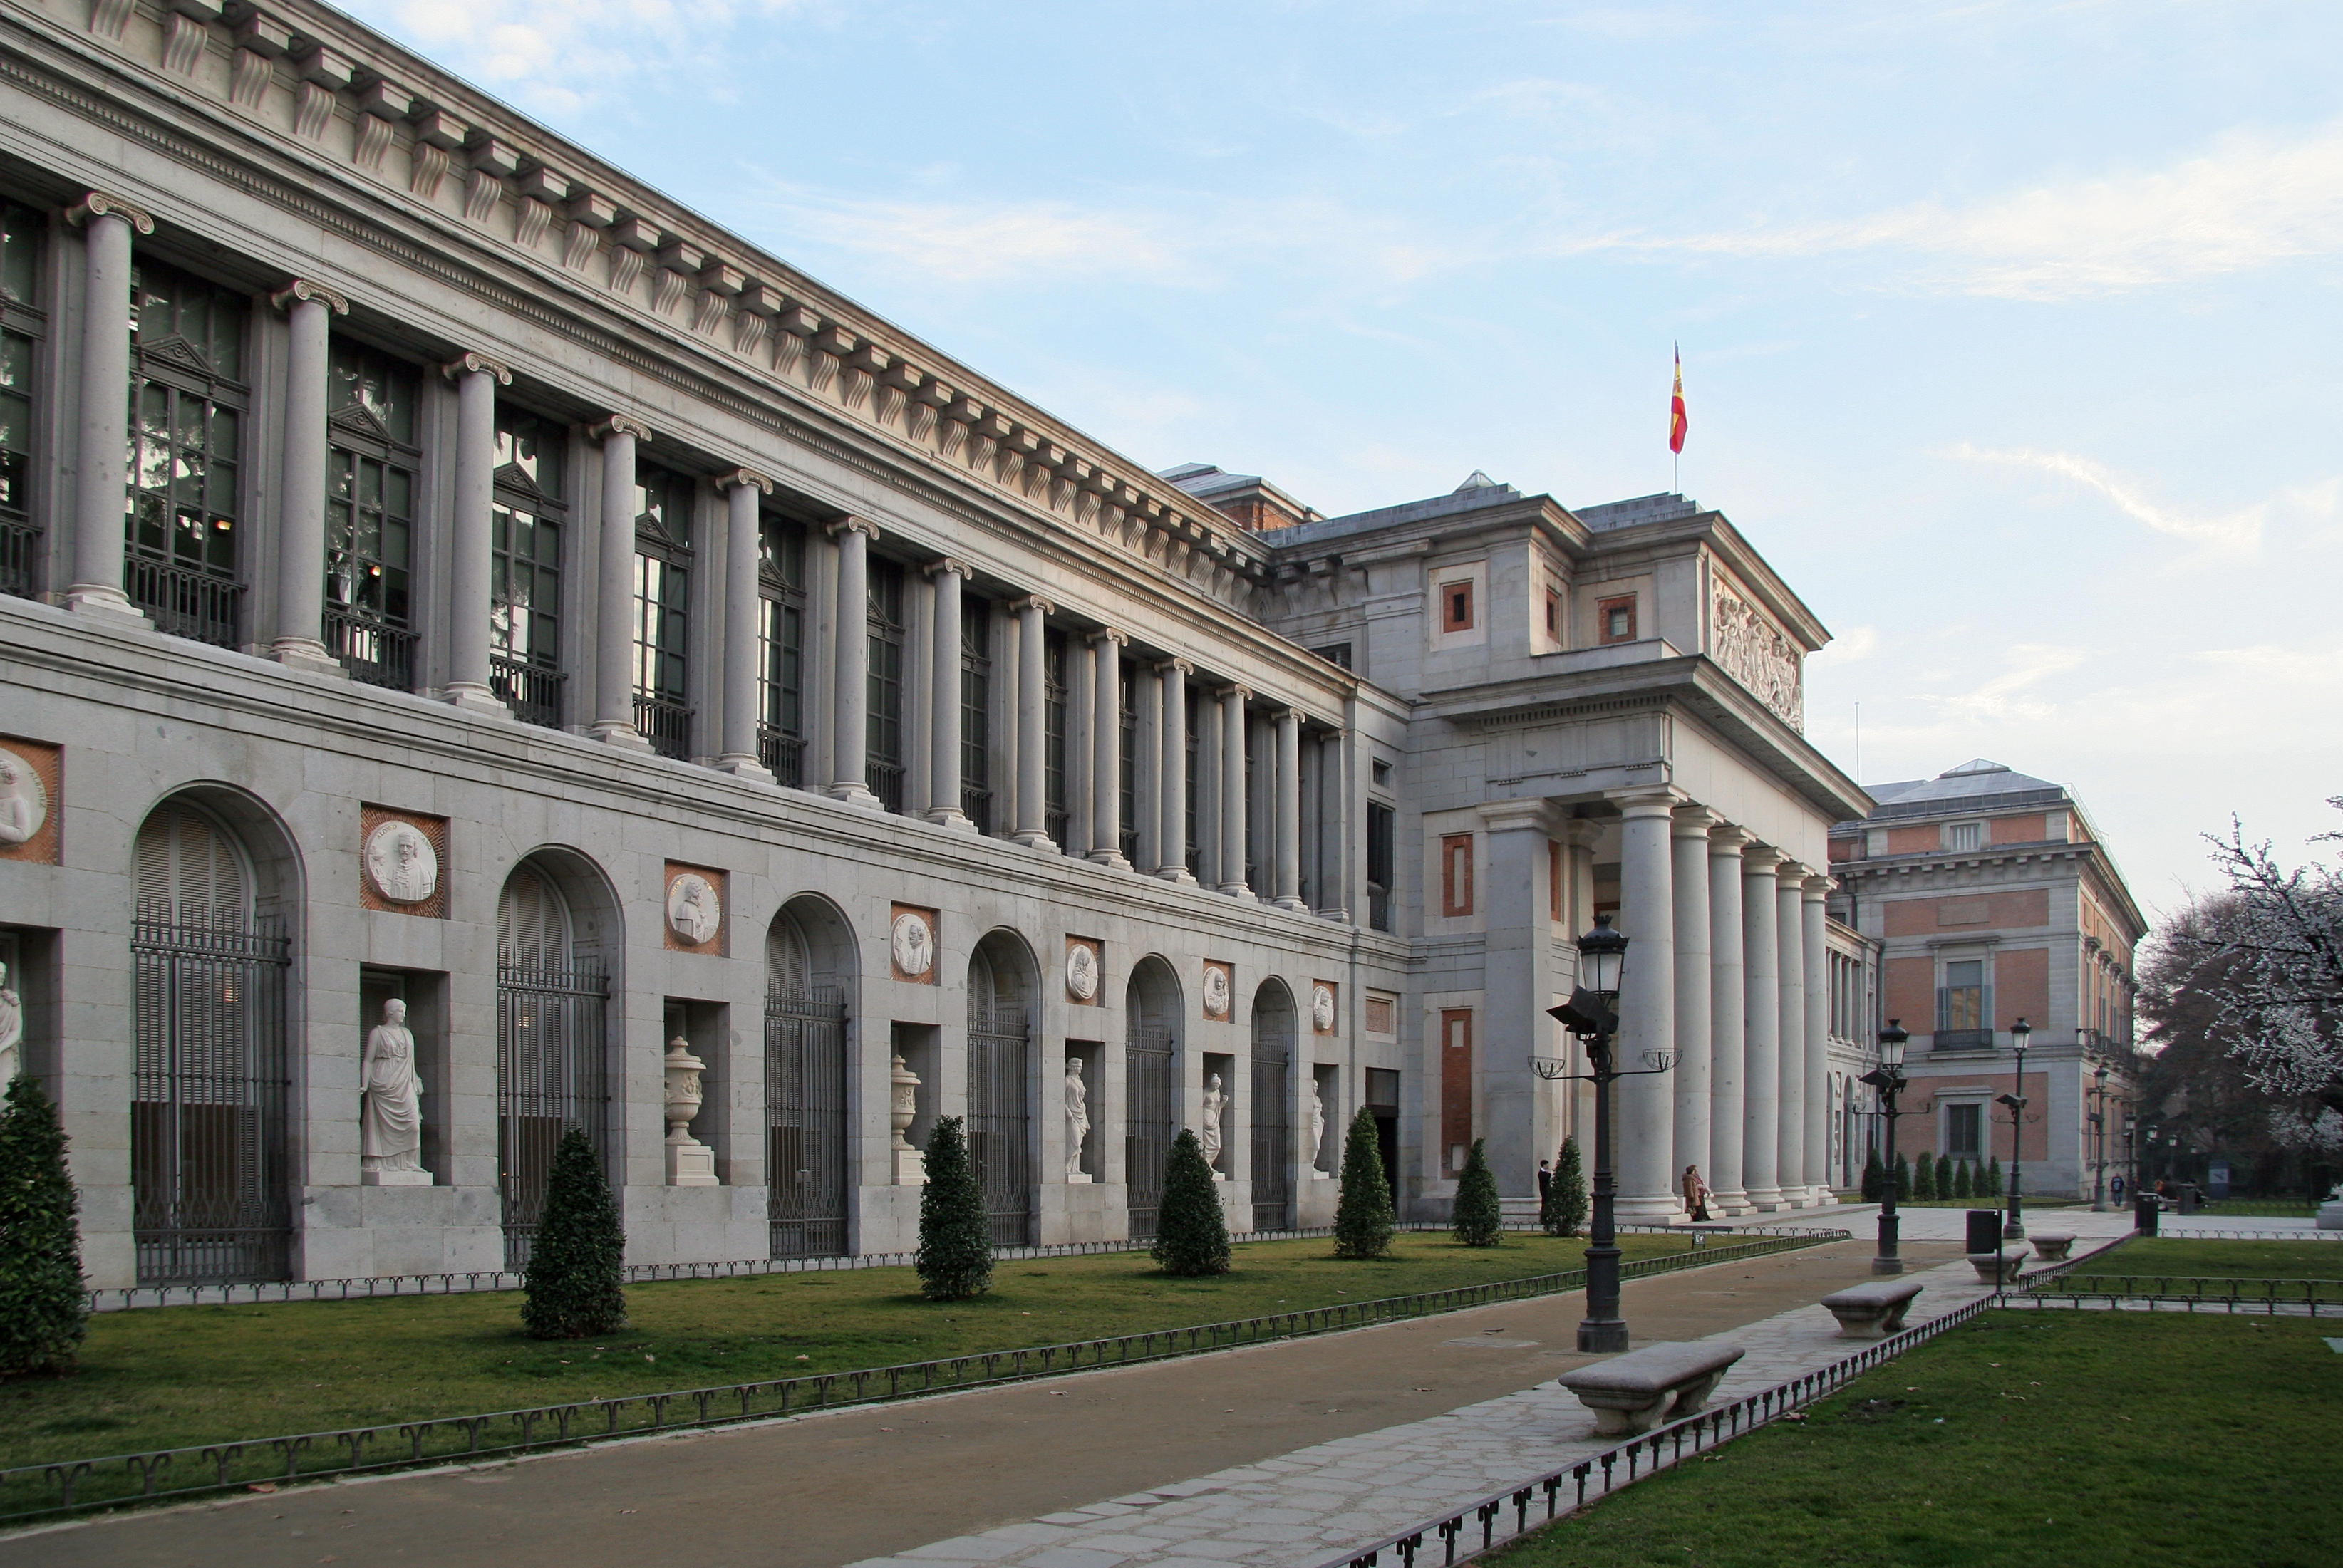 File:Museo del Prado (Madrid) 04.jpg - Wikimedia Commons